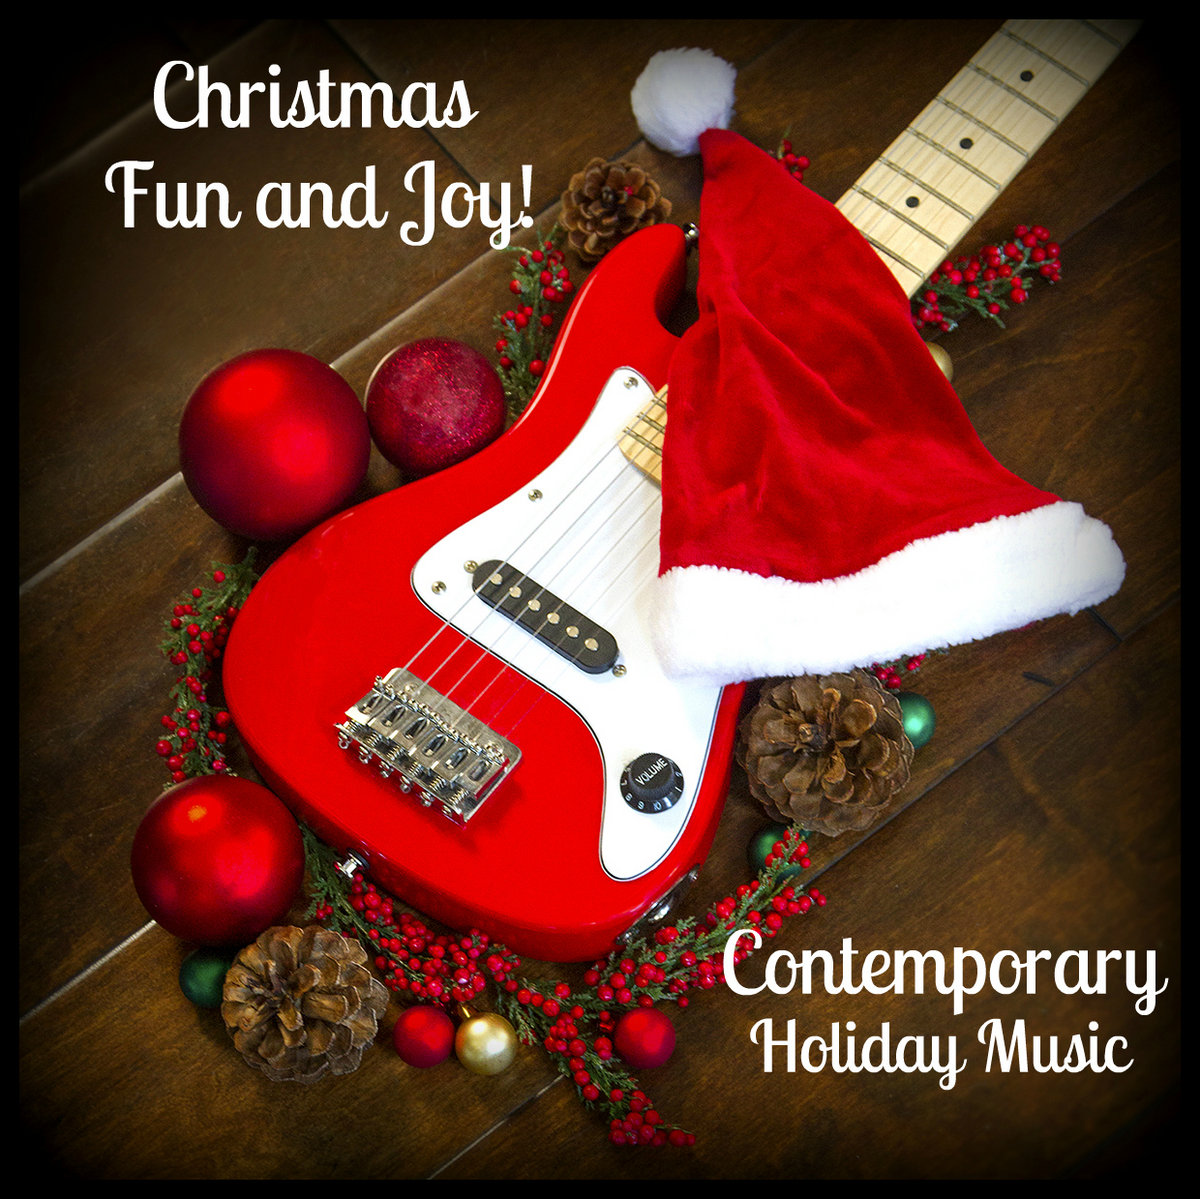 from christmas fun and joy contemporary holiday music by heavy hitters music - Chicago Christmas Station